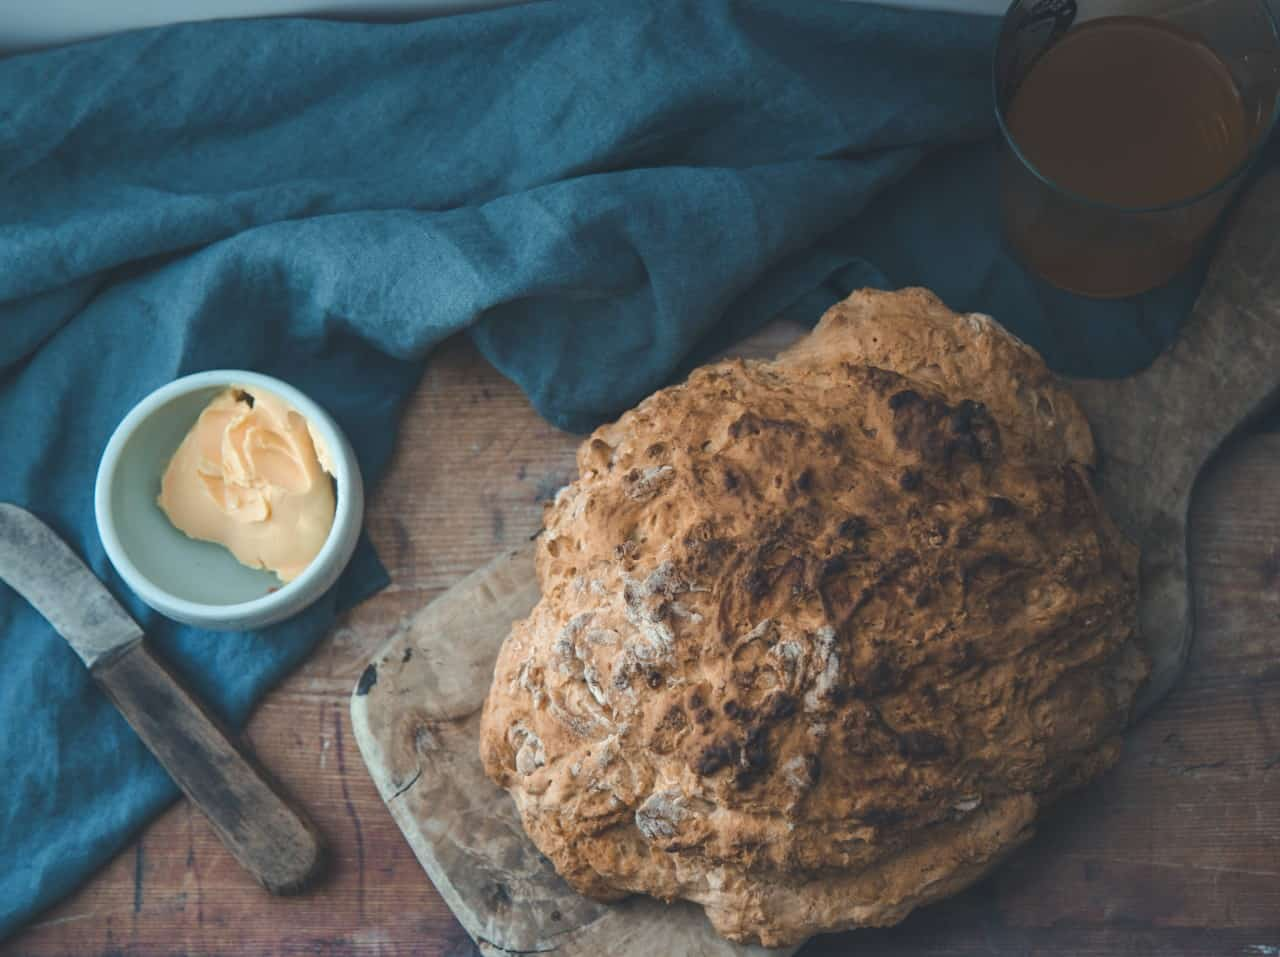 How to Make Quick and Easy Vegan Beer Bread